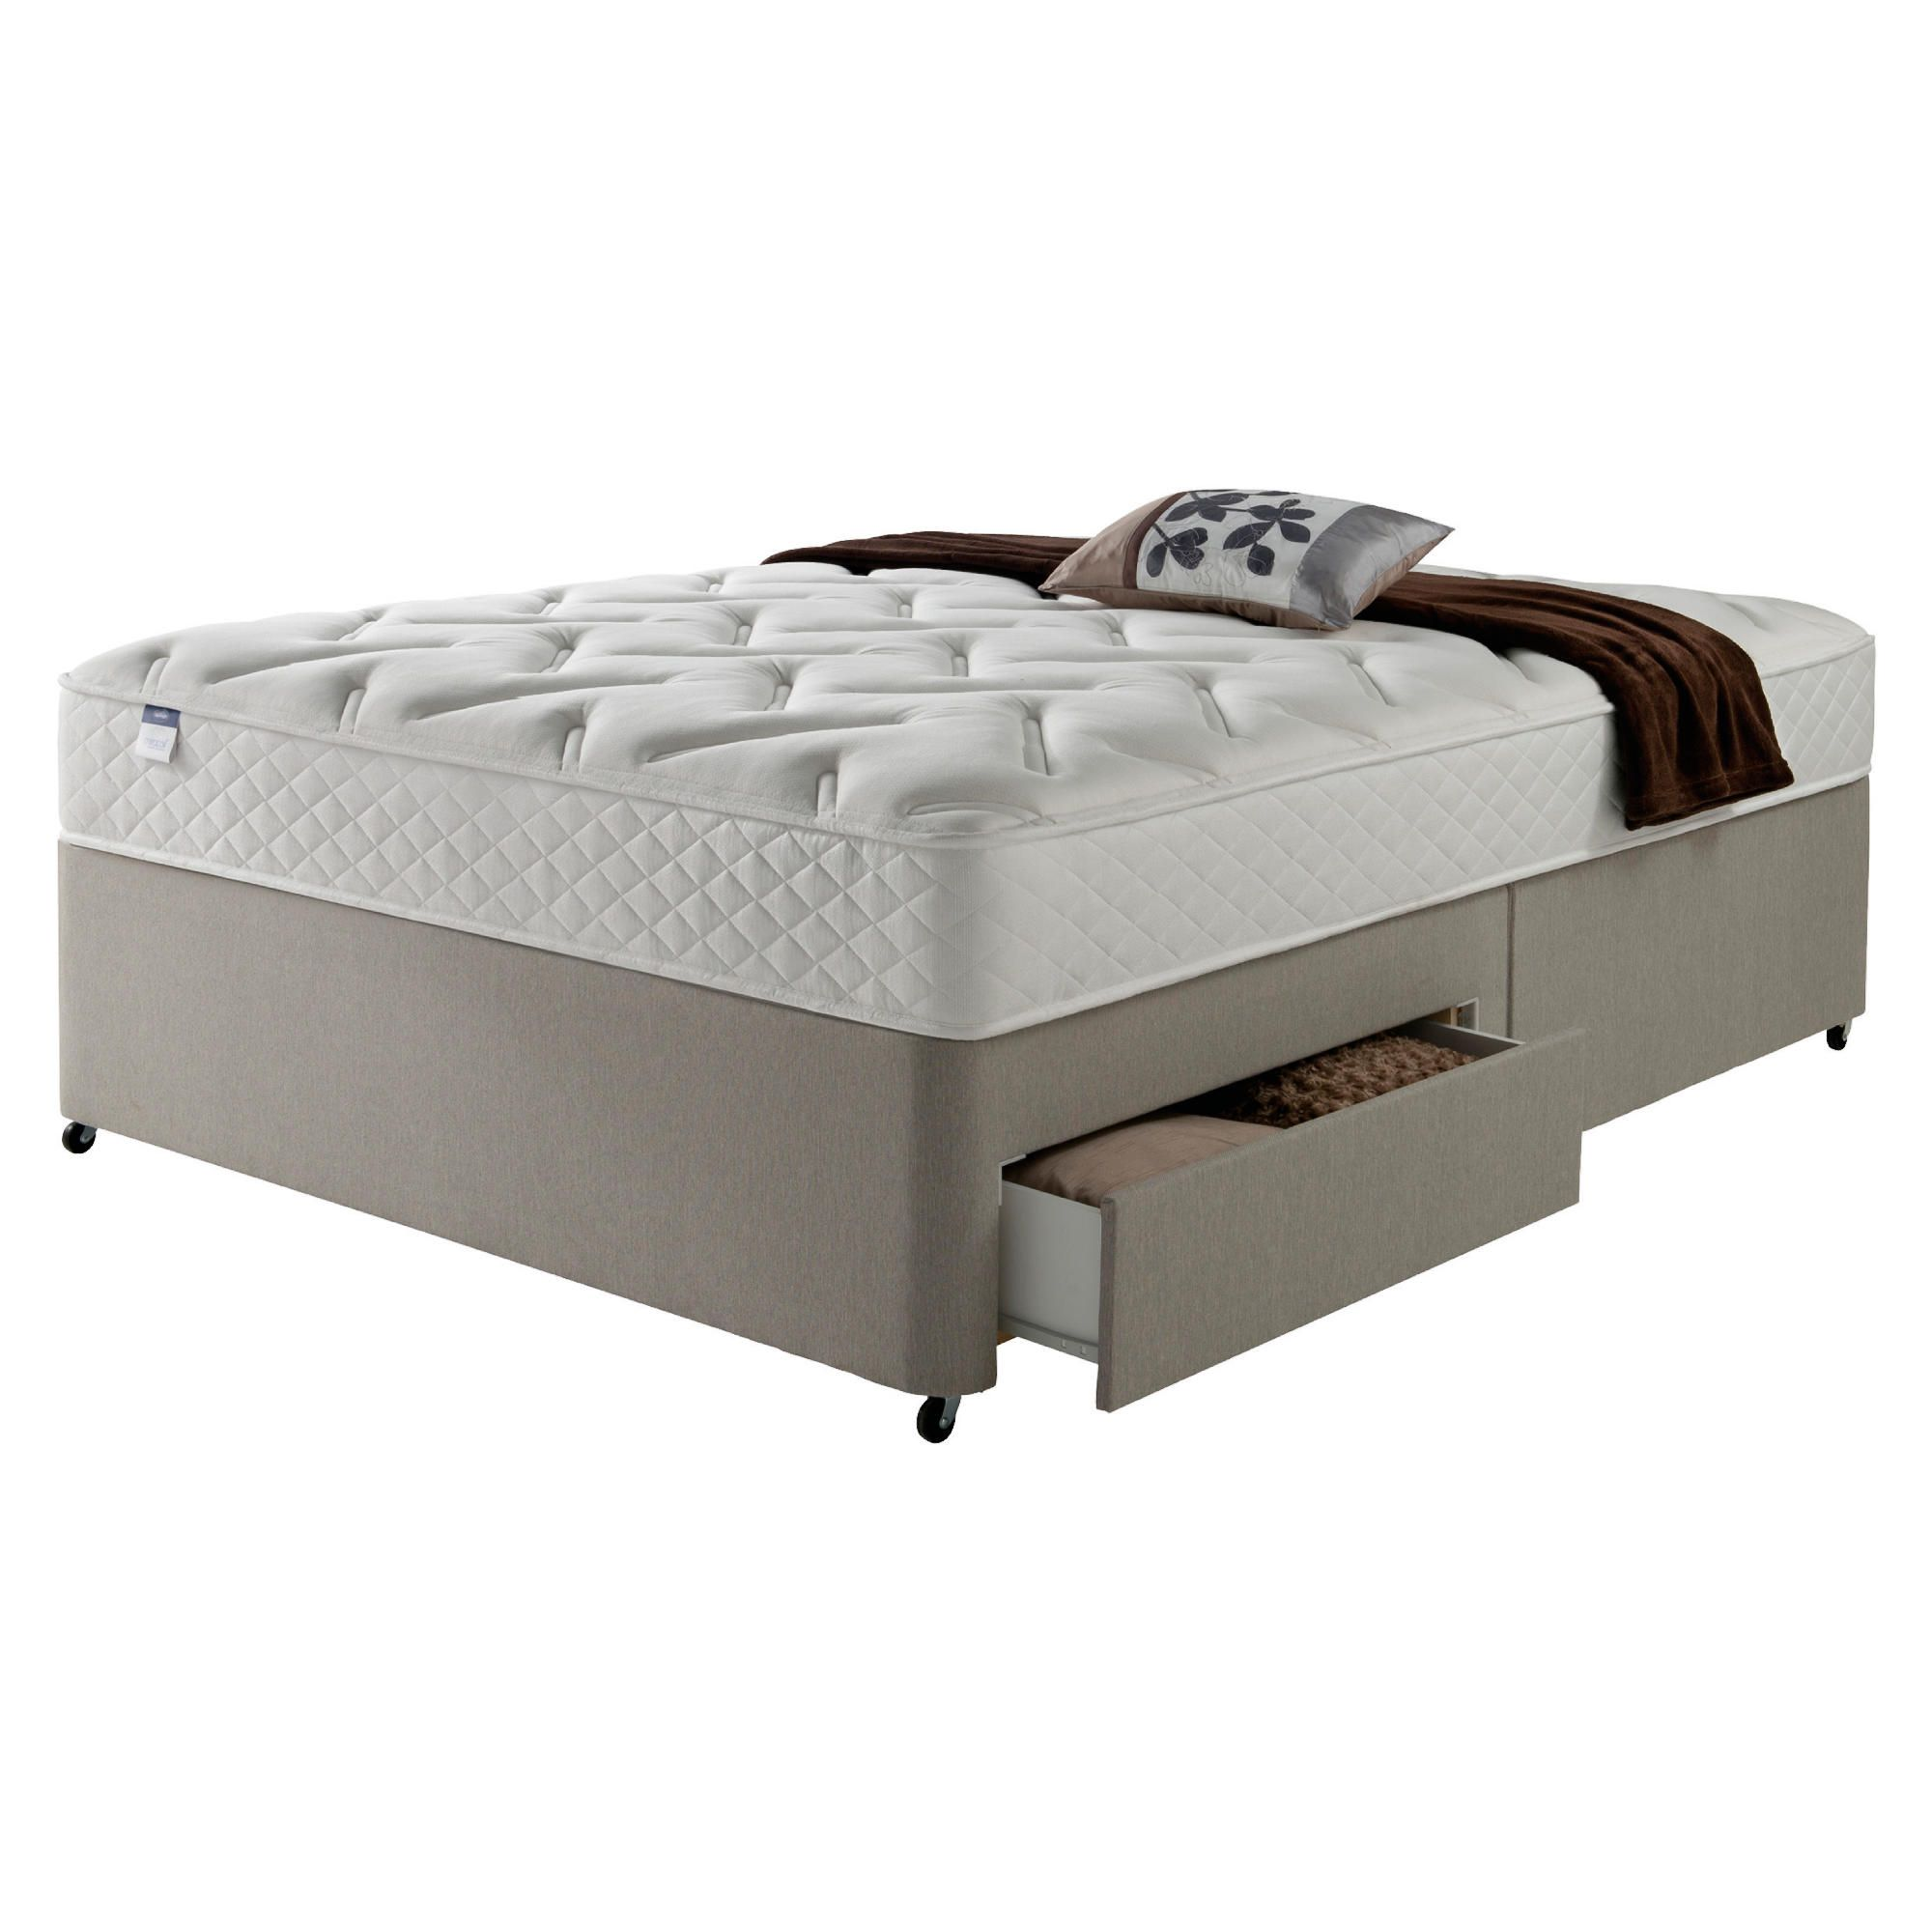 Silentnight Miracoil Luxury Memory 2 Drawer Super King Divan Mink no Headboard at Tesco Direct